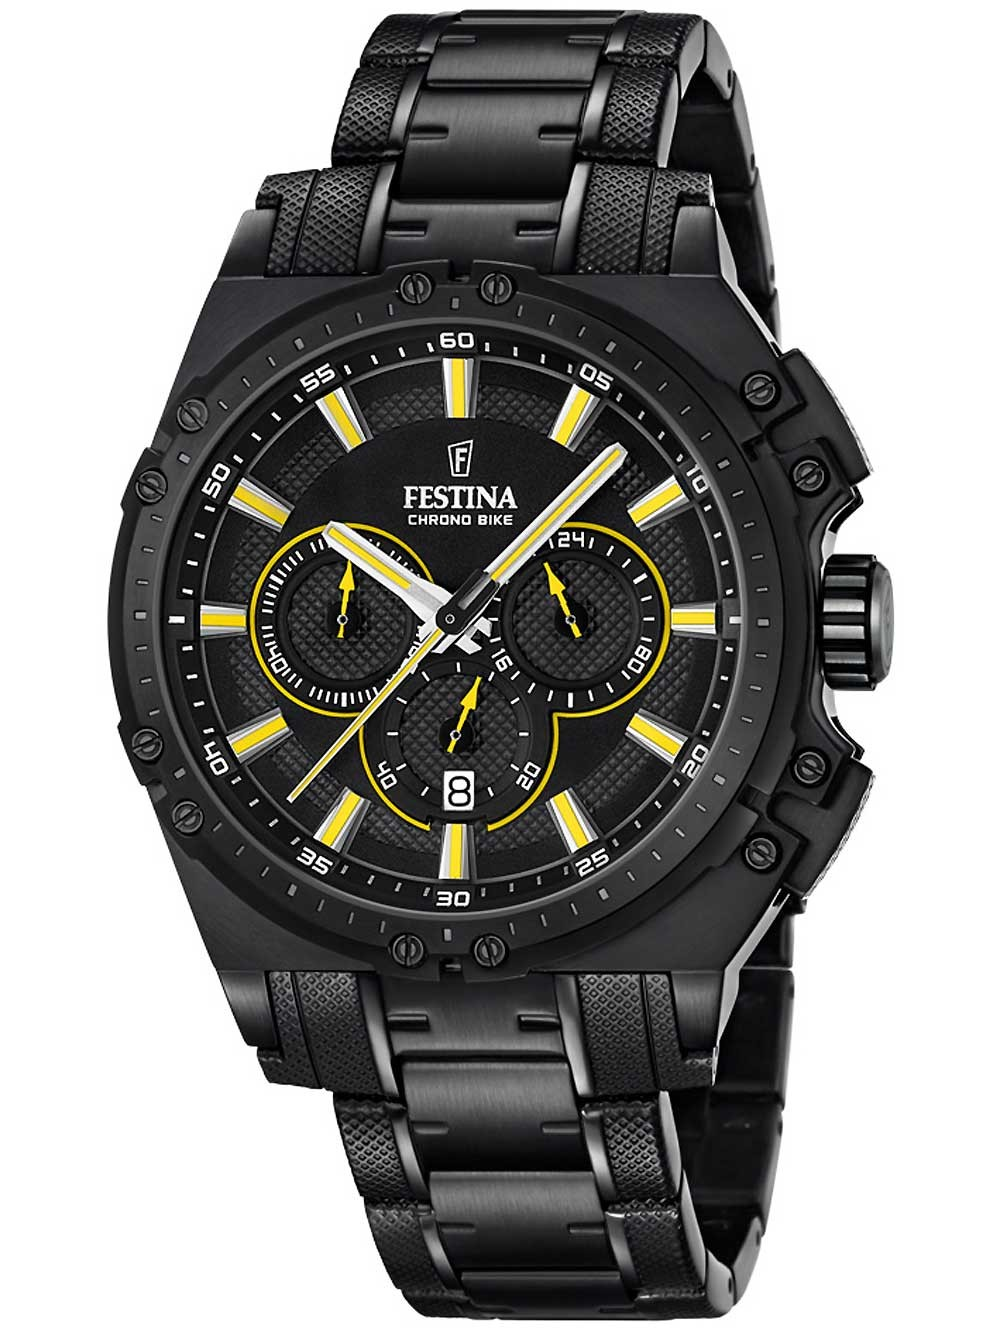 ceas barbatesc festina f16969/3 chrono-bike 2016 44mm 10atm